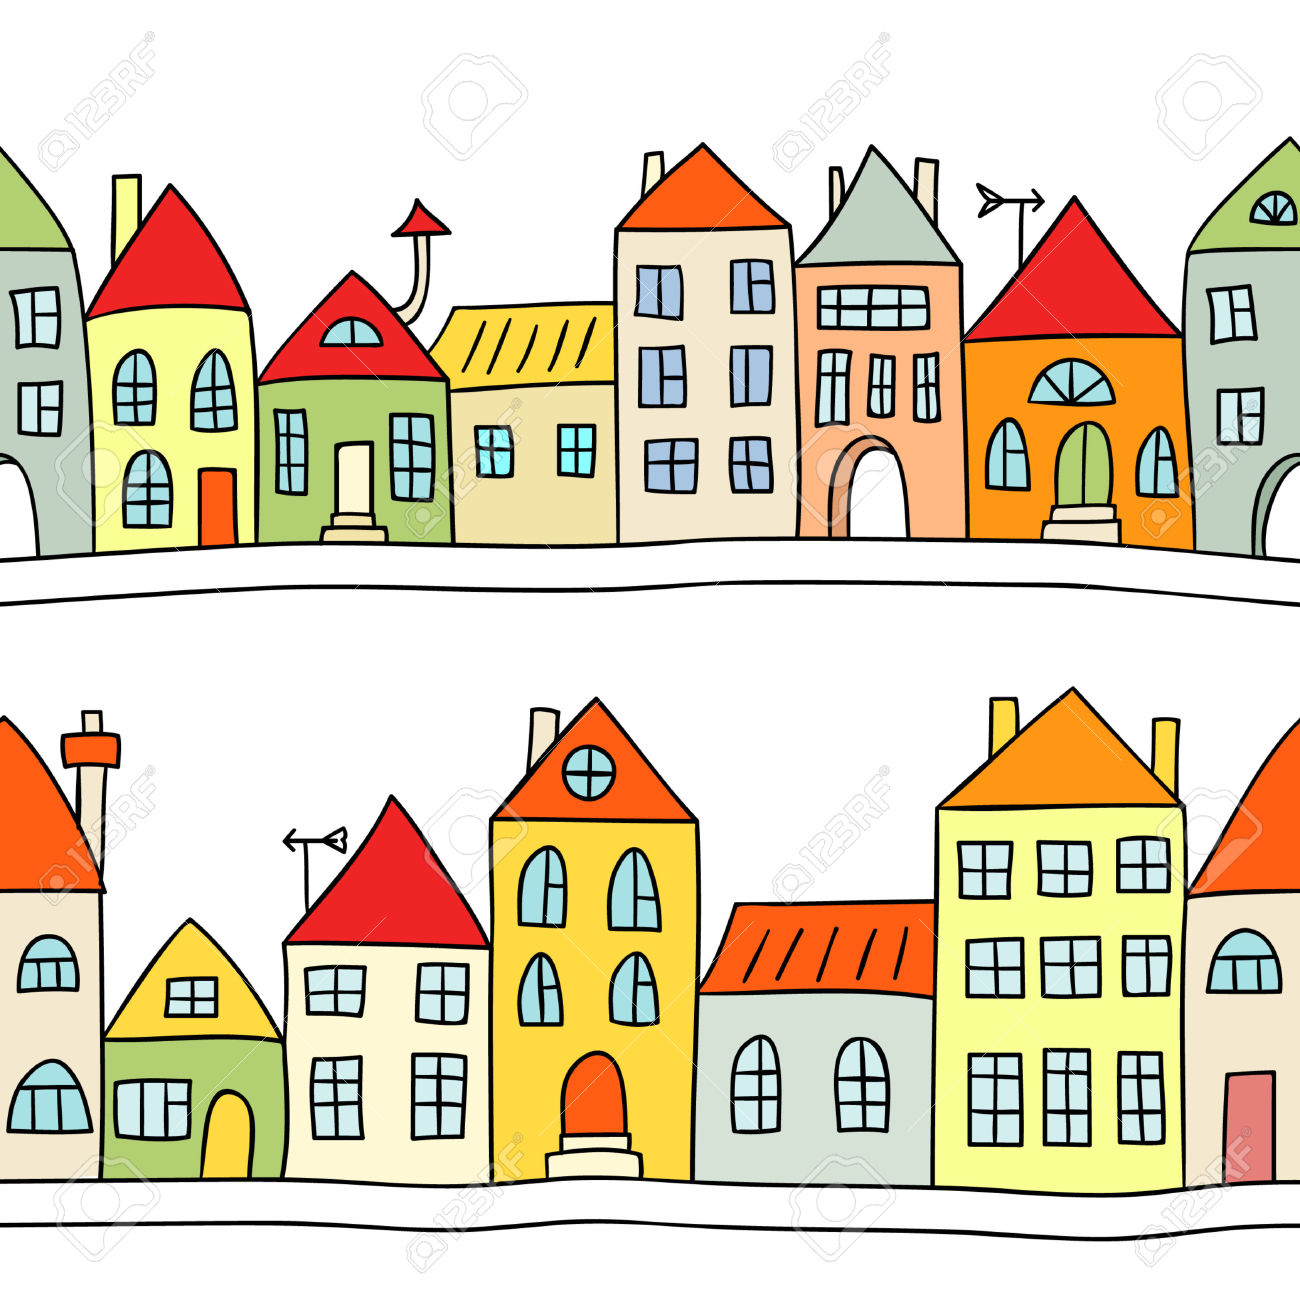 Houses clipart. Row of